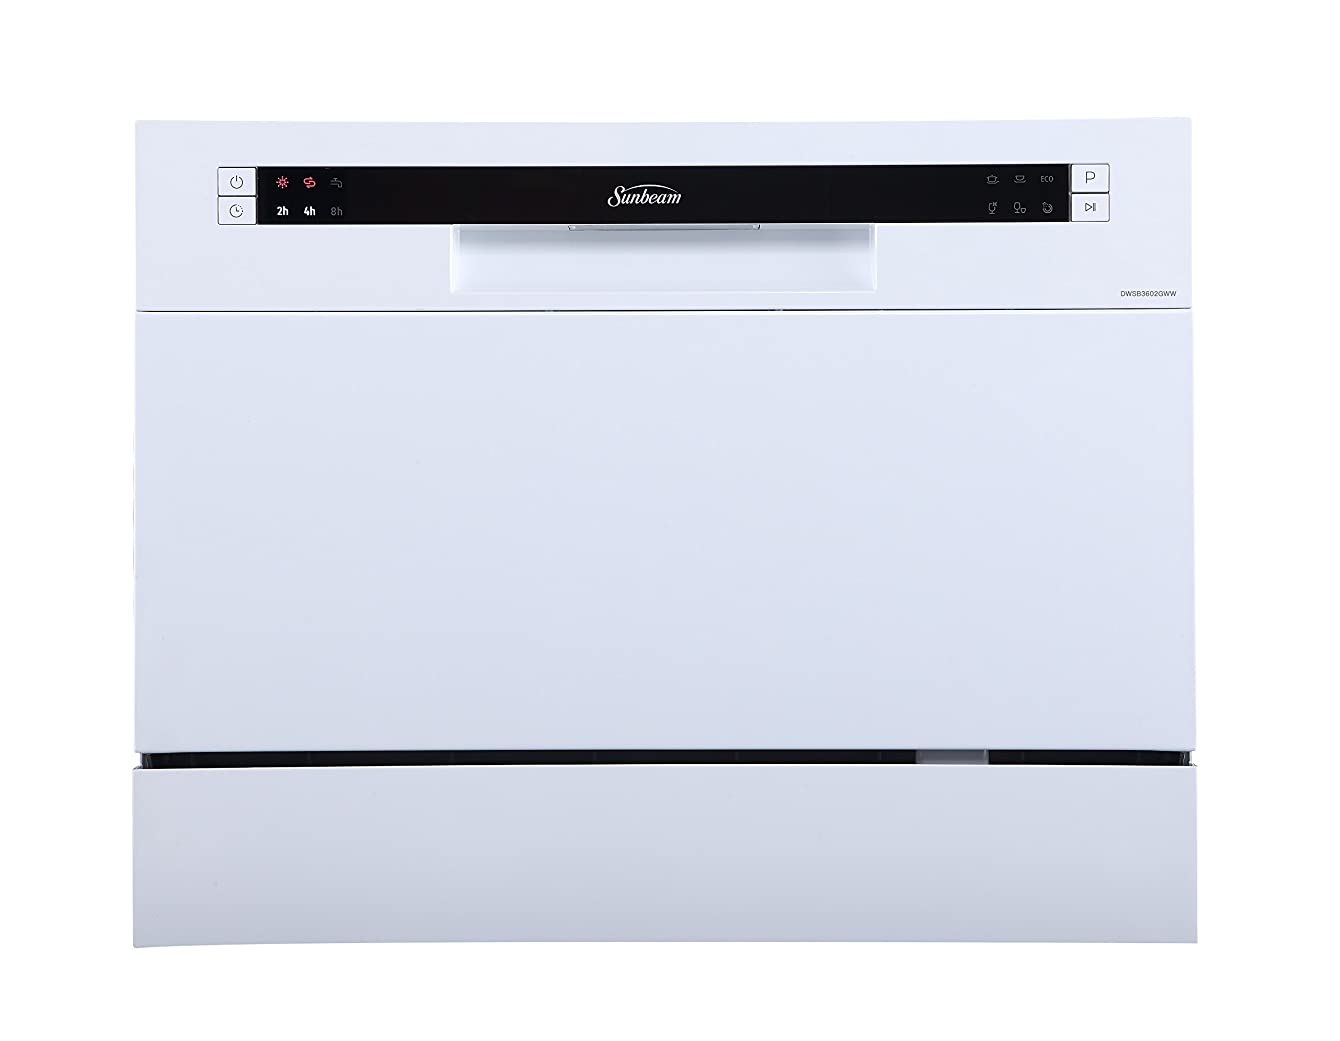 Sunbeam DWSB3602GWW Compact Countertop Dishwasher With Delay Start, White